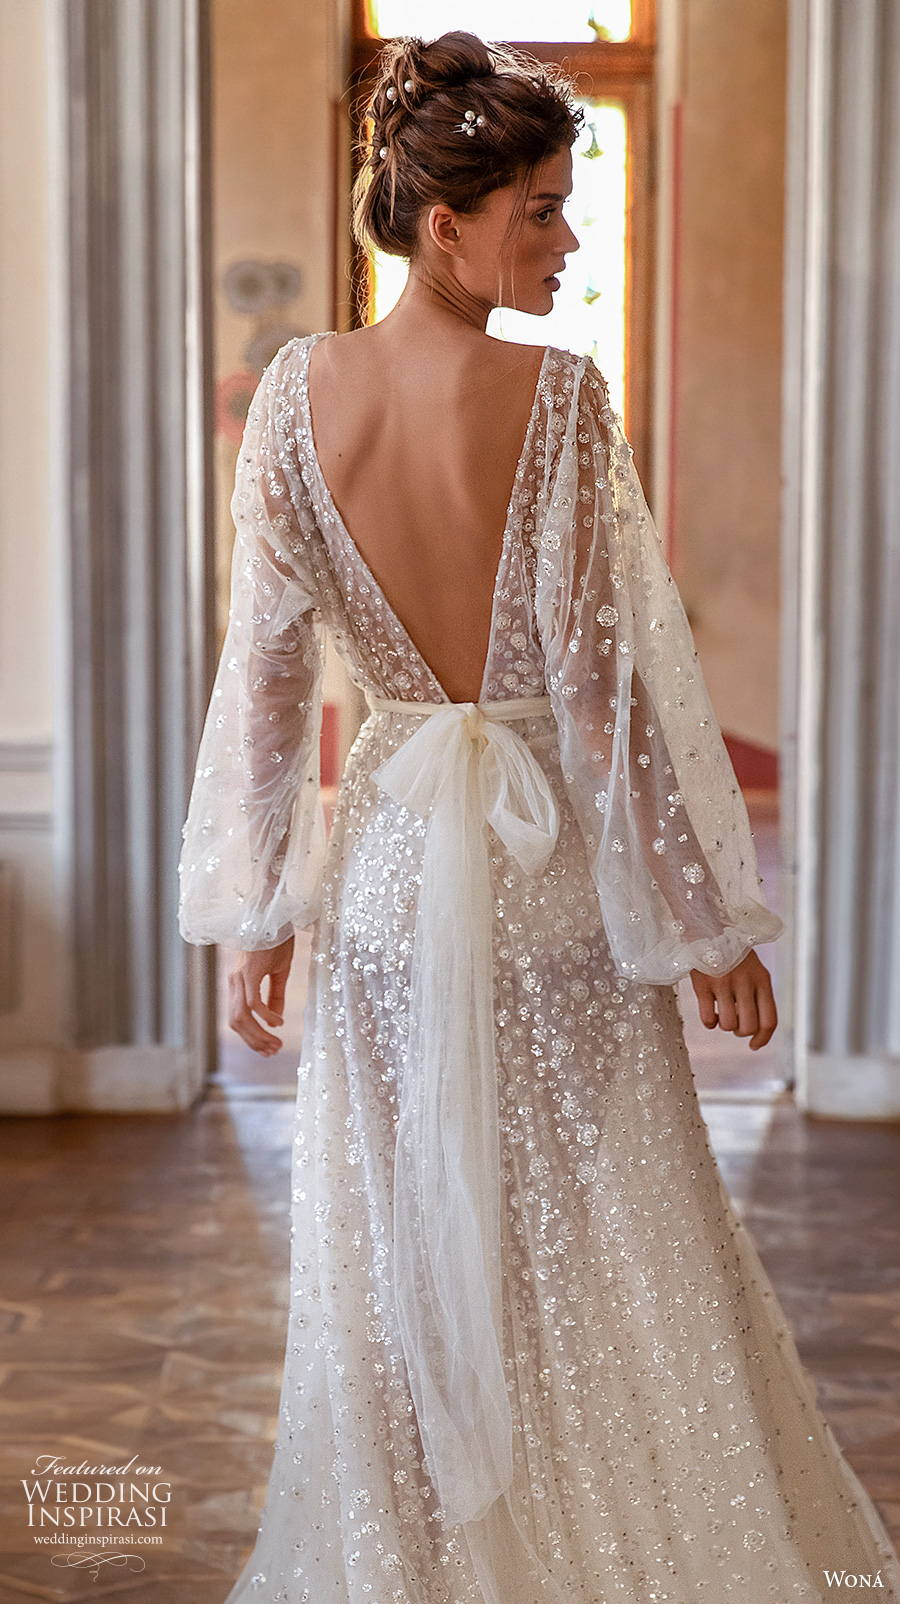 wona concept 2021 romance bridal long bishop sleeves jewel neck full embellishment romantic soft a  line wedding dress v back chapel train (5) zbv